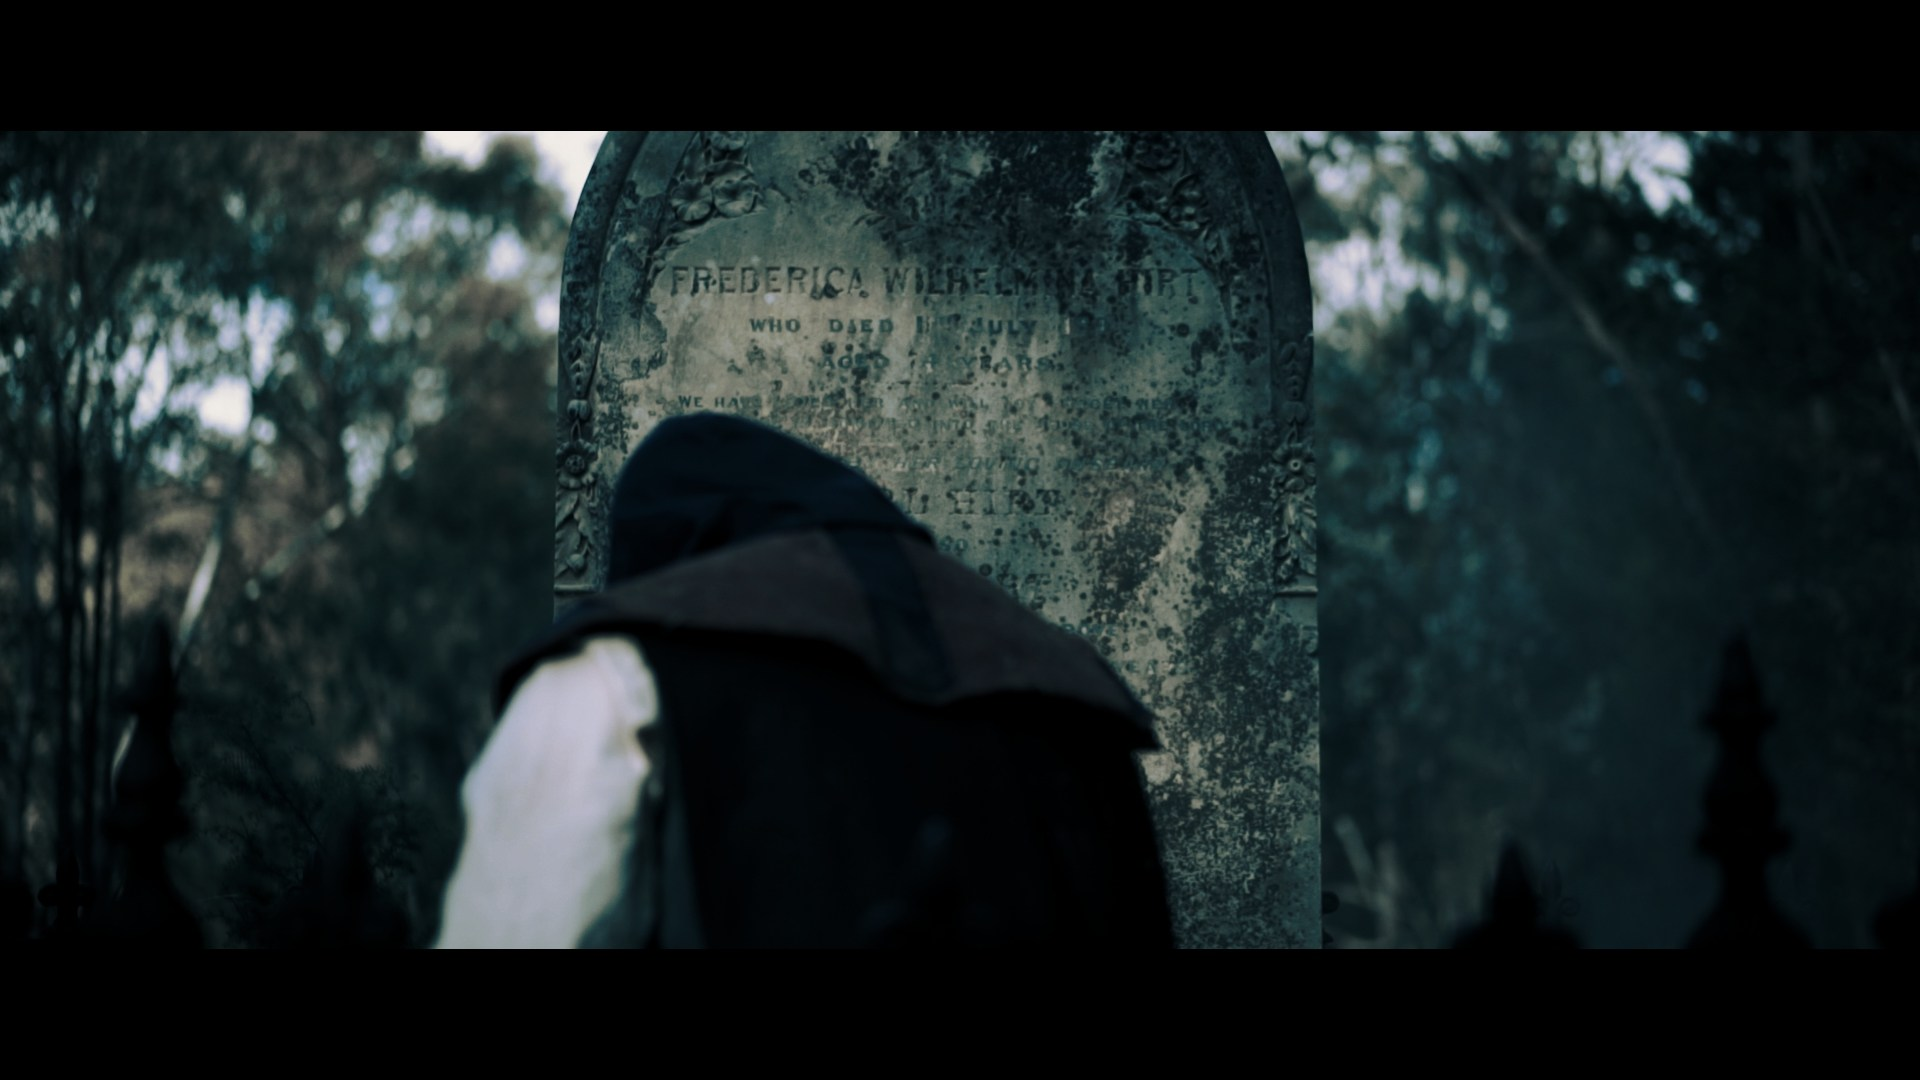 All our heroes are dead - Video teaser by City On A Hill, Book of Judges.